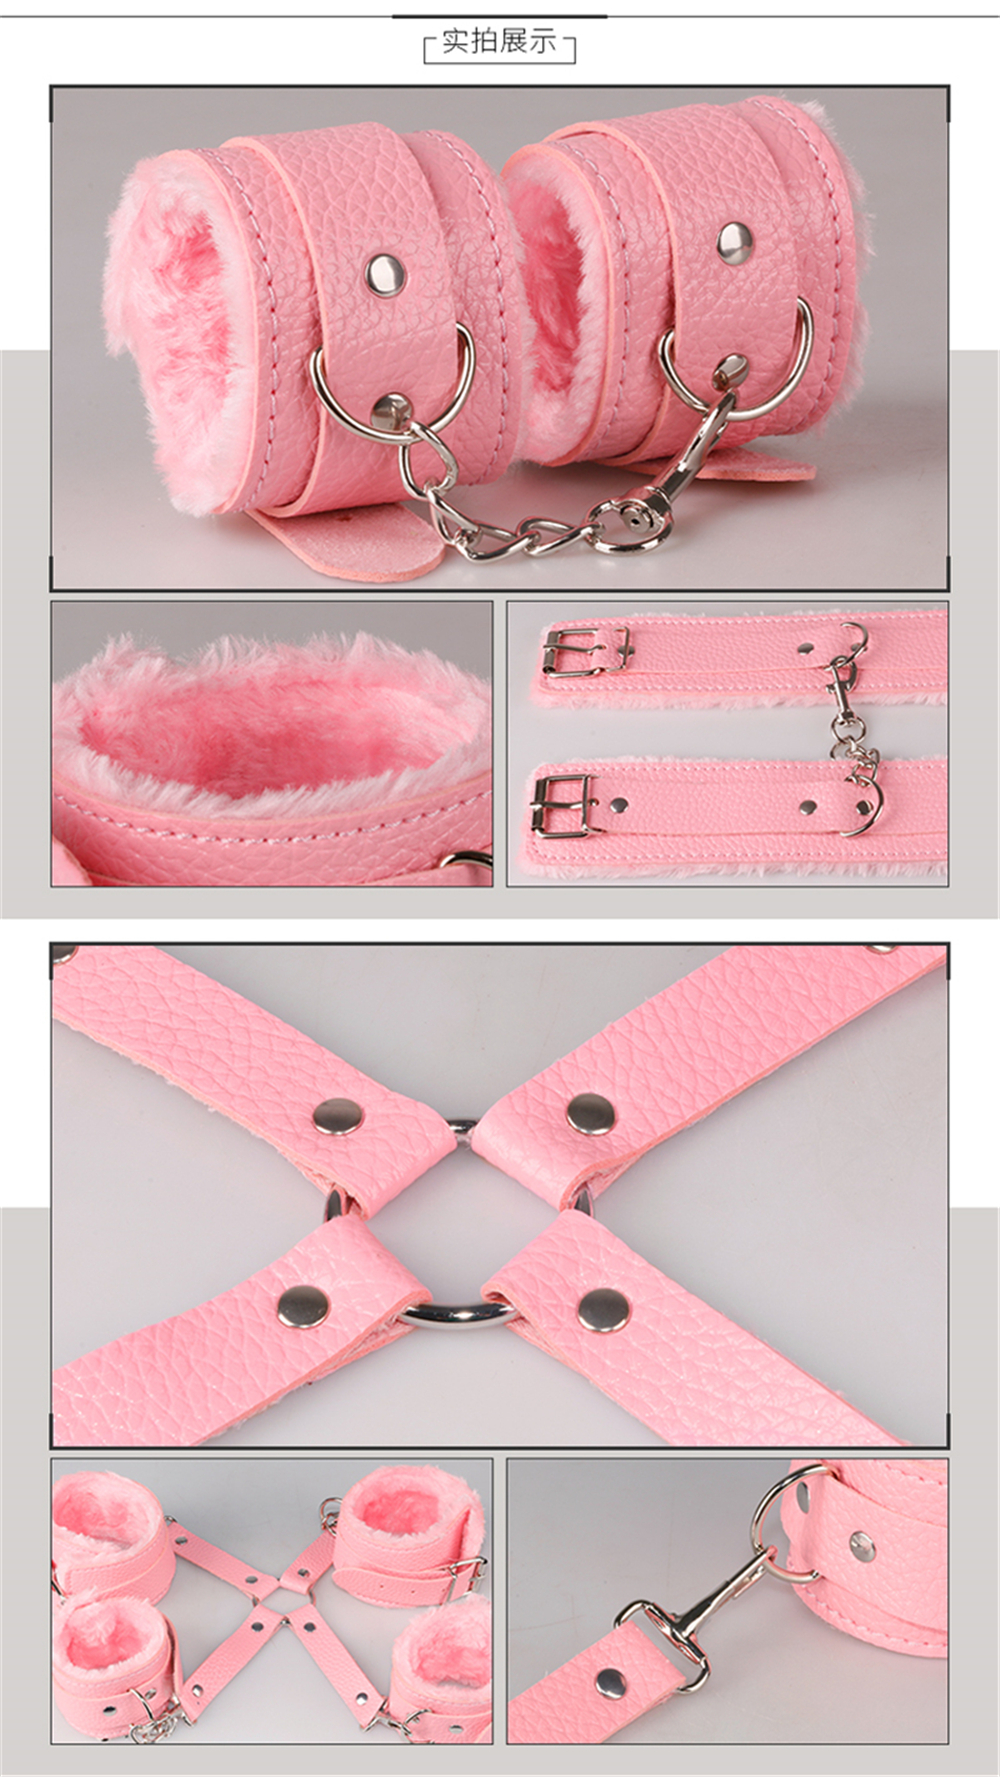 Sex Bondage Kit Set 10 Pcs Sexy Product Set Adult Games Toys Set Hand Cuffs Footcuff Whip Rope Blindfold Couples Erotic Toys 7